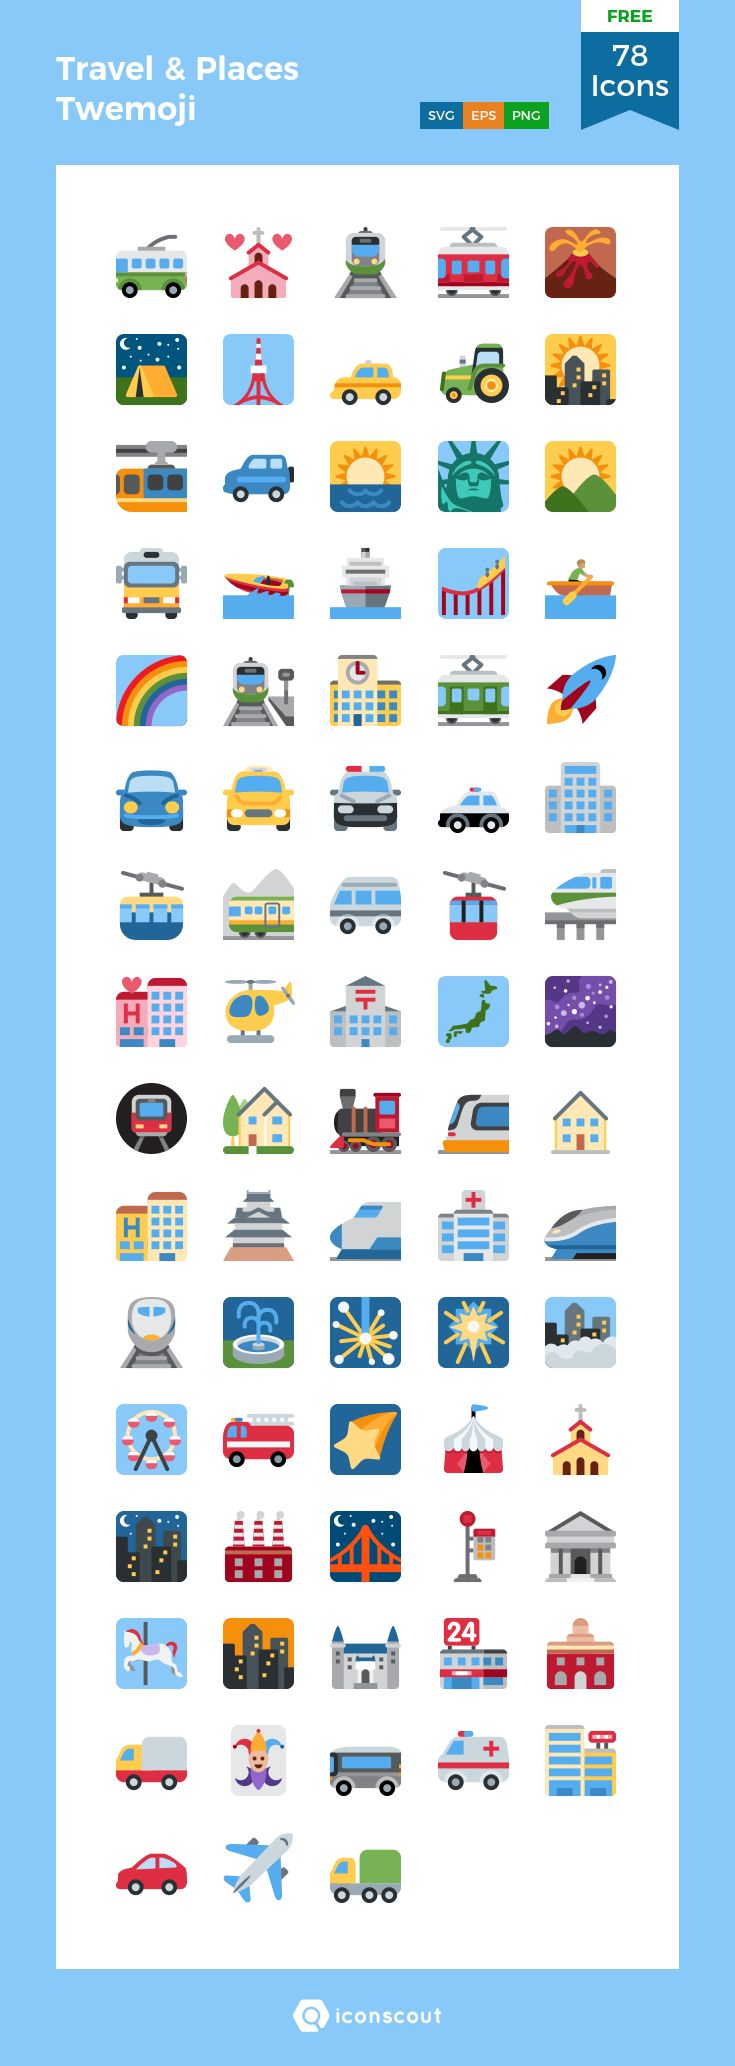 Travel & Places Twemoji Free  Icon Pack - 78 Flat Icons